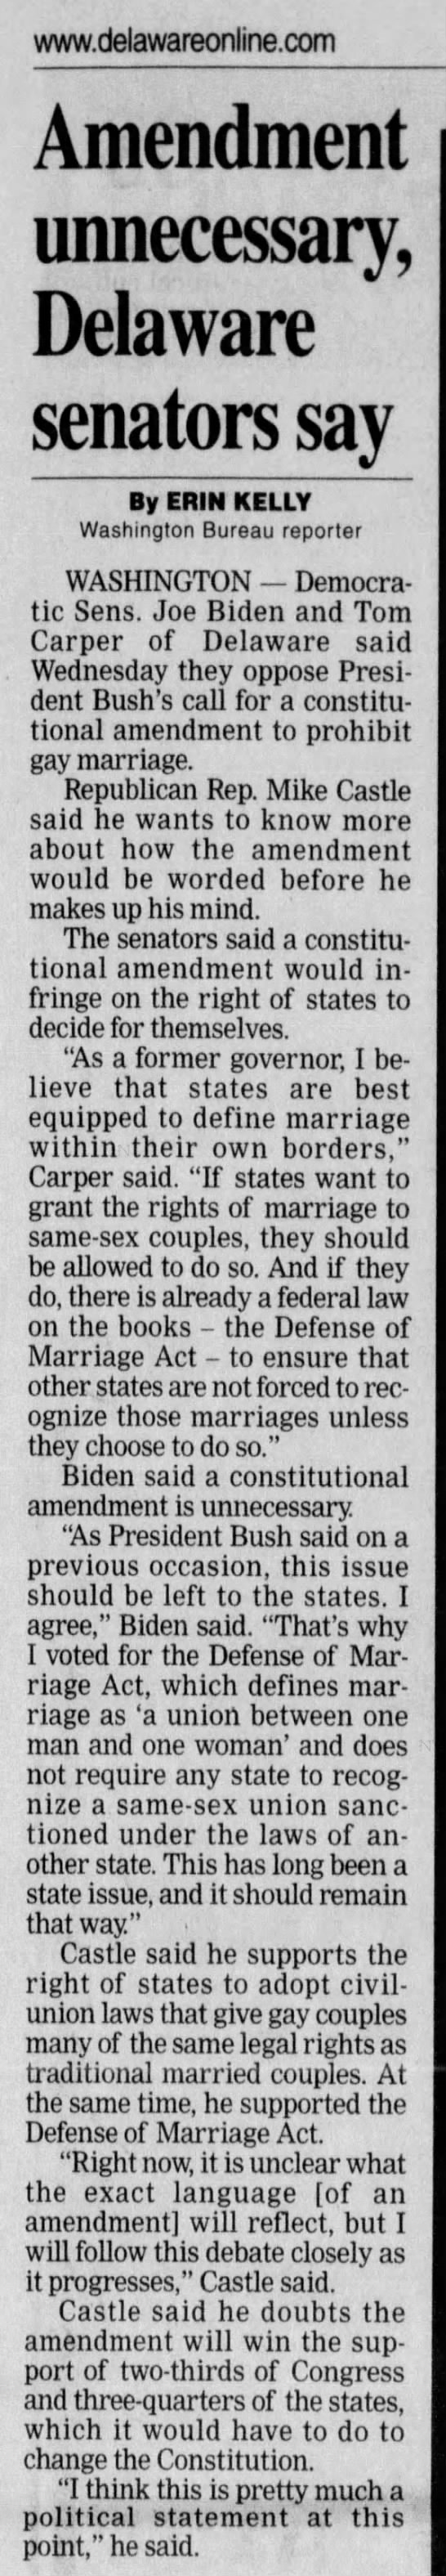 In February 2004, Joe Biden Re-iterates Support For Defense Of Marriage Act -